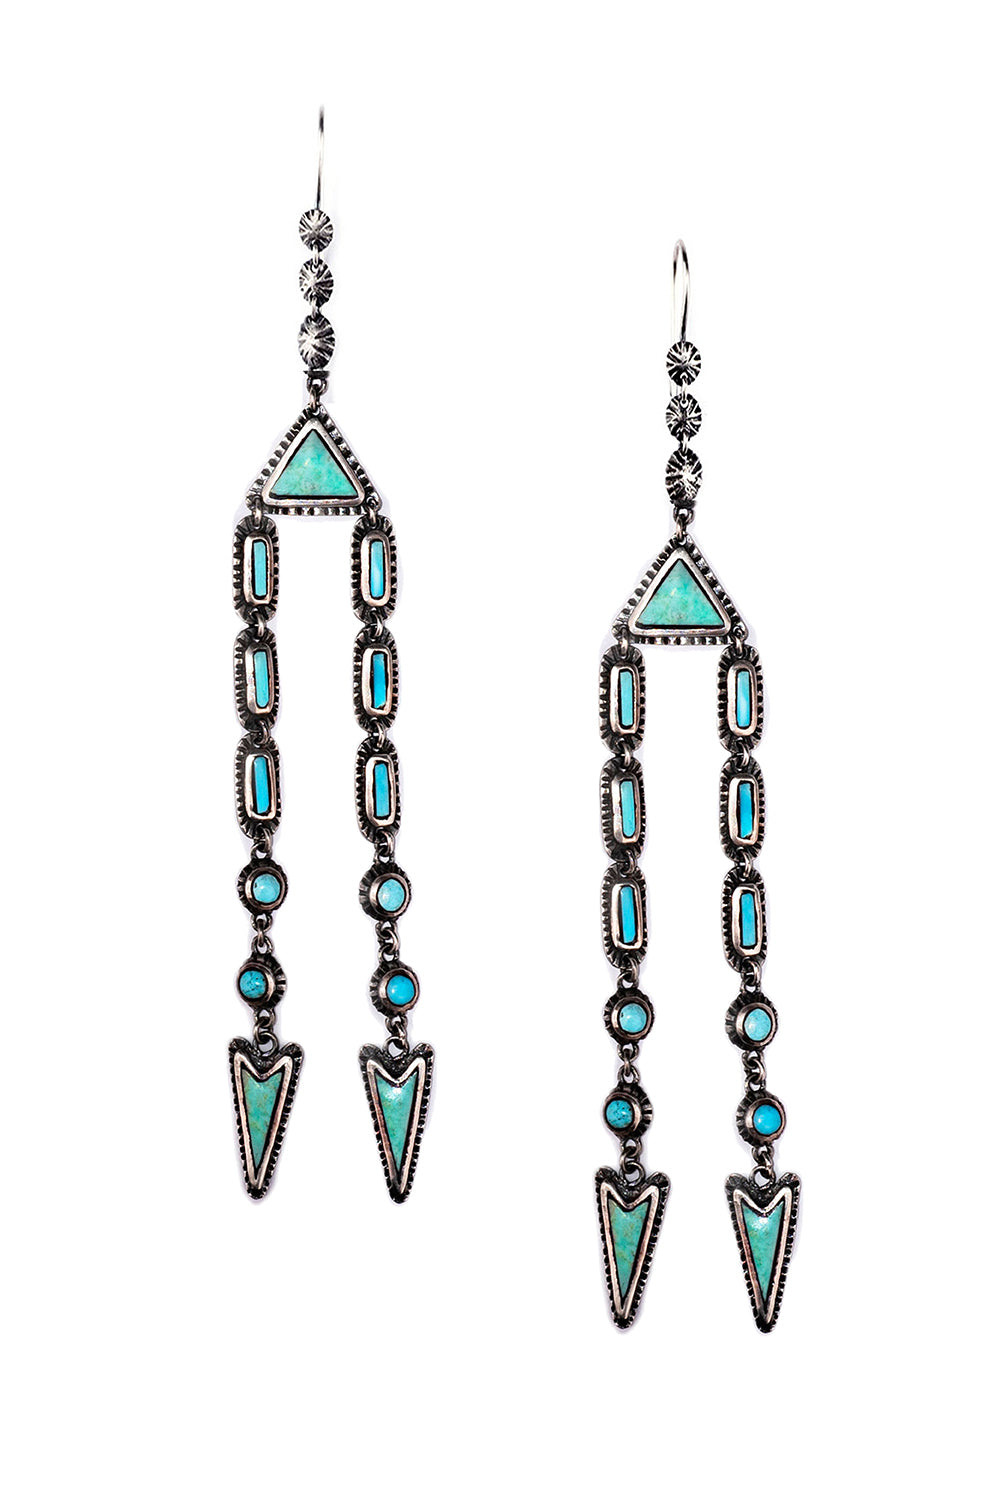 Earrings, Chandelier, Marfa Lights, Turquoise